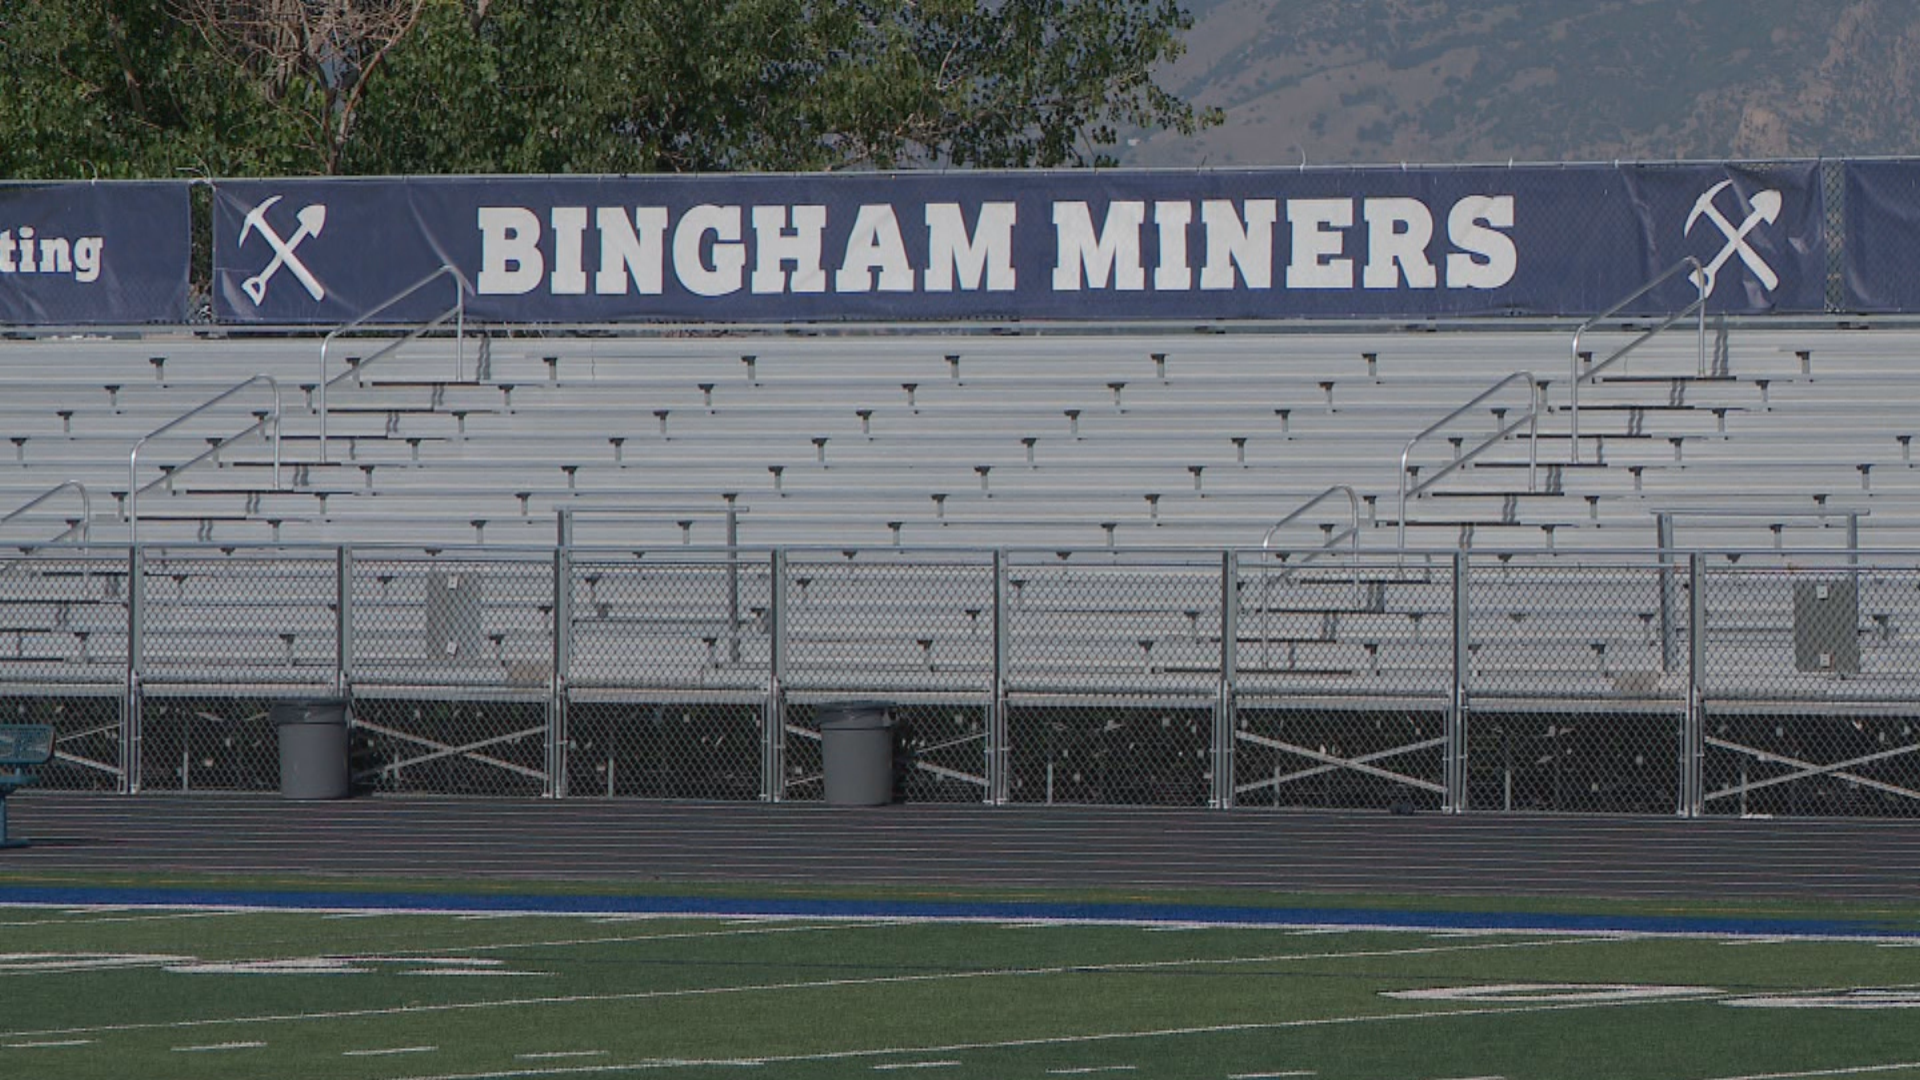 Bingham football will keep practicing after isolating players potentially exposed to virus (Photo: KUTV)